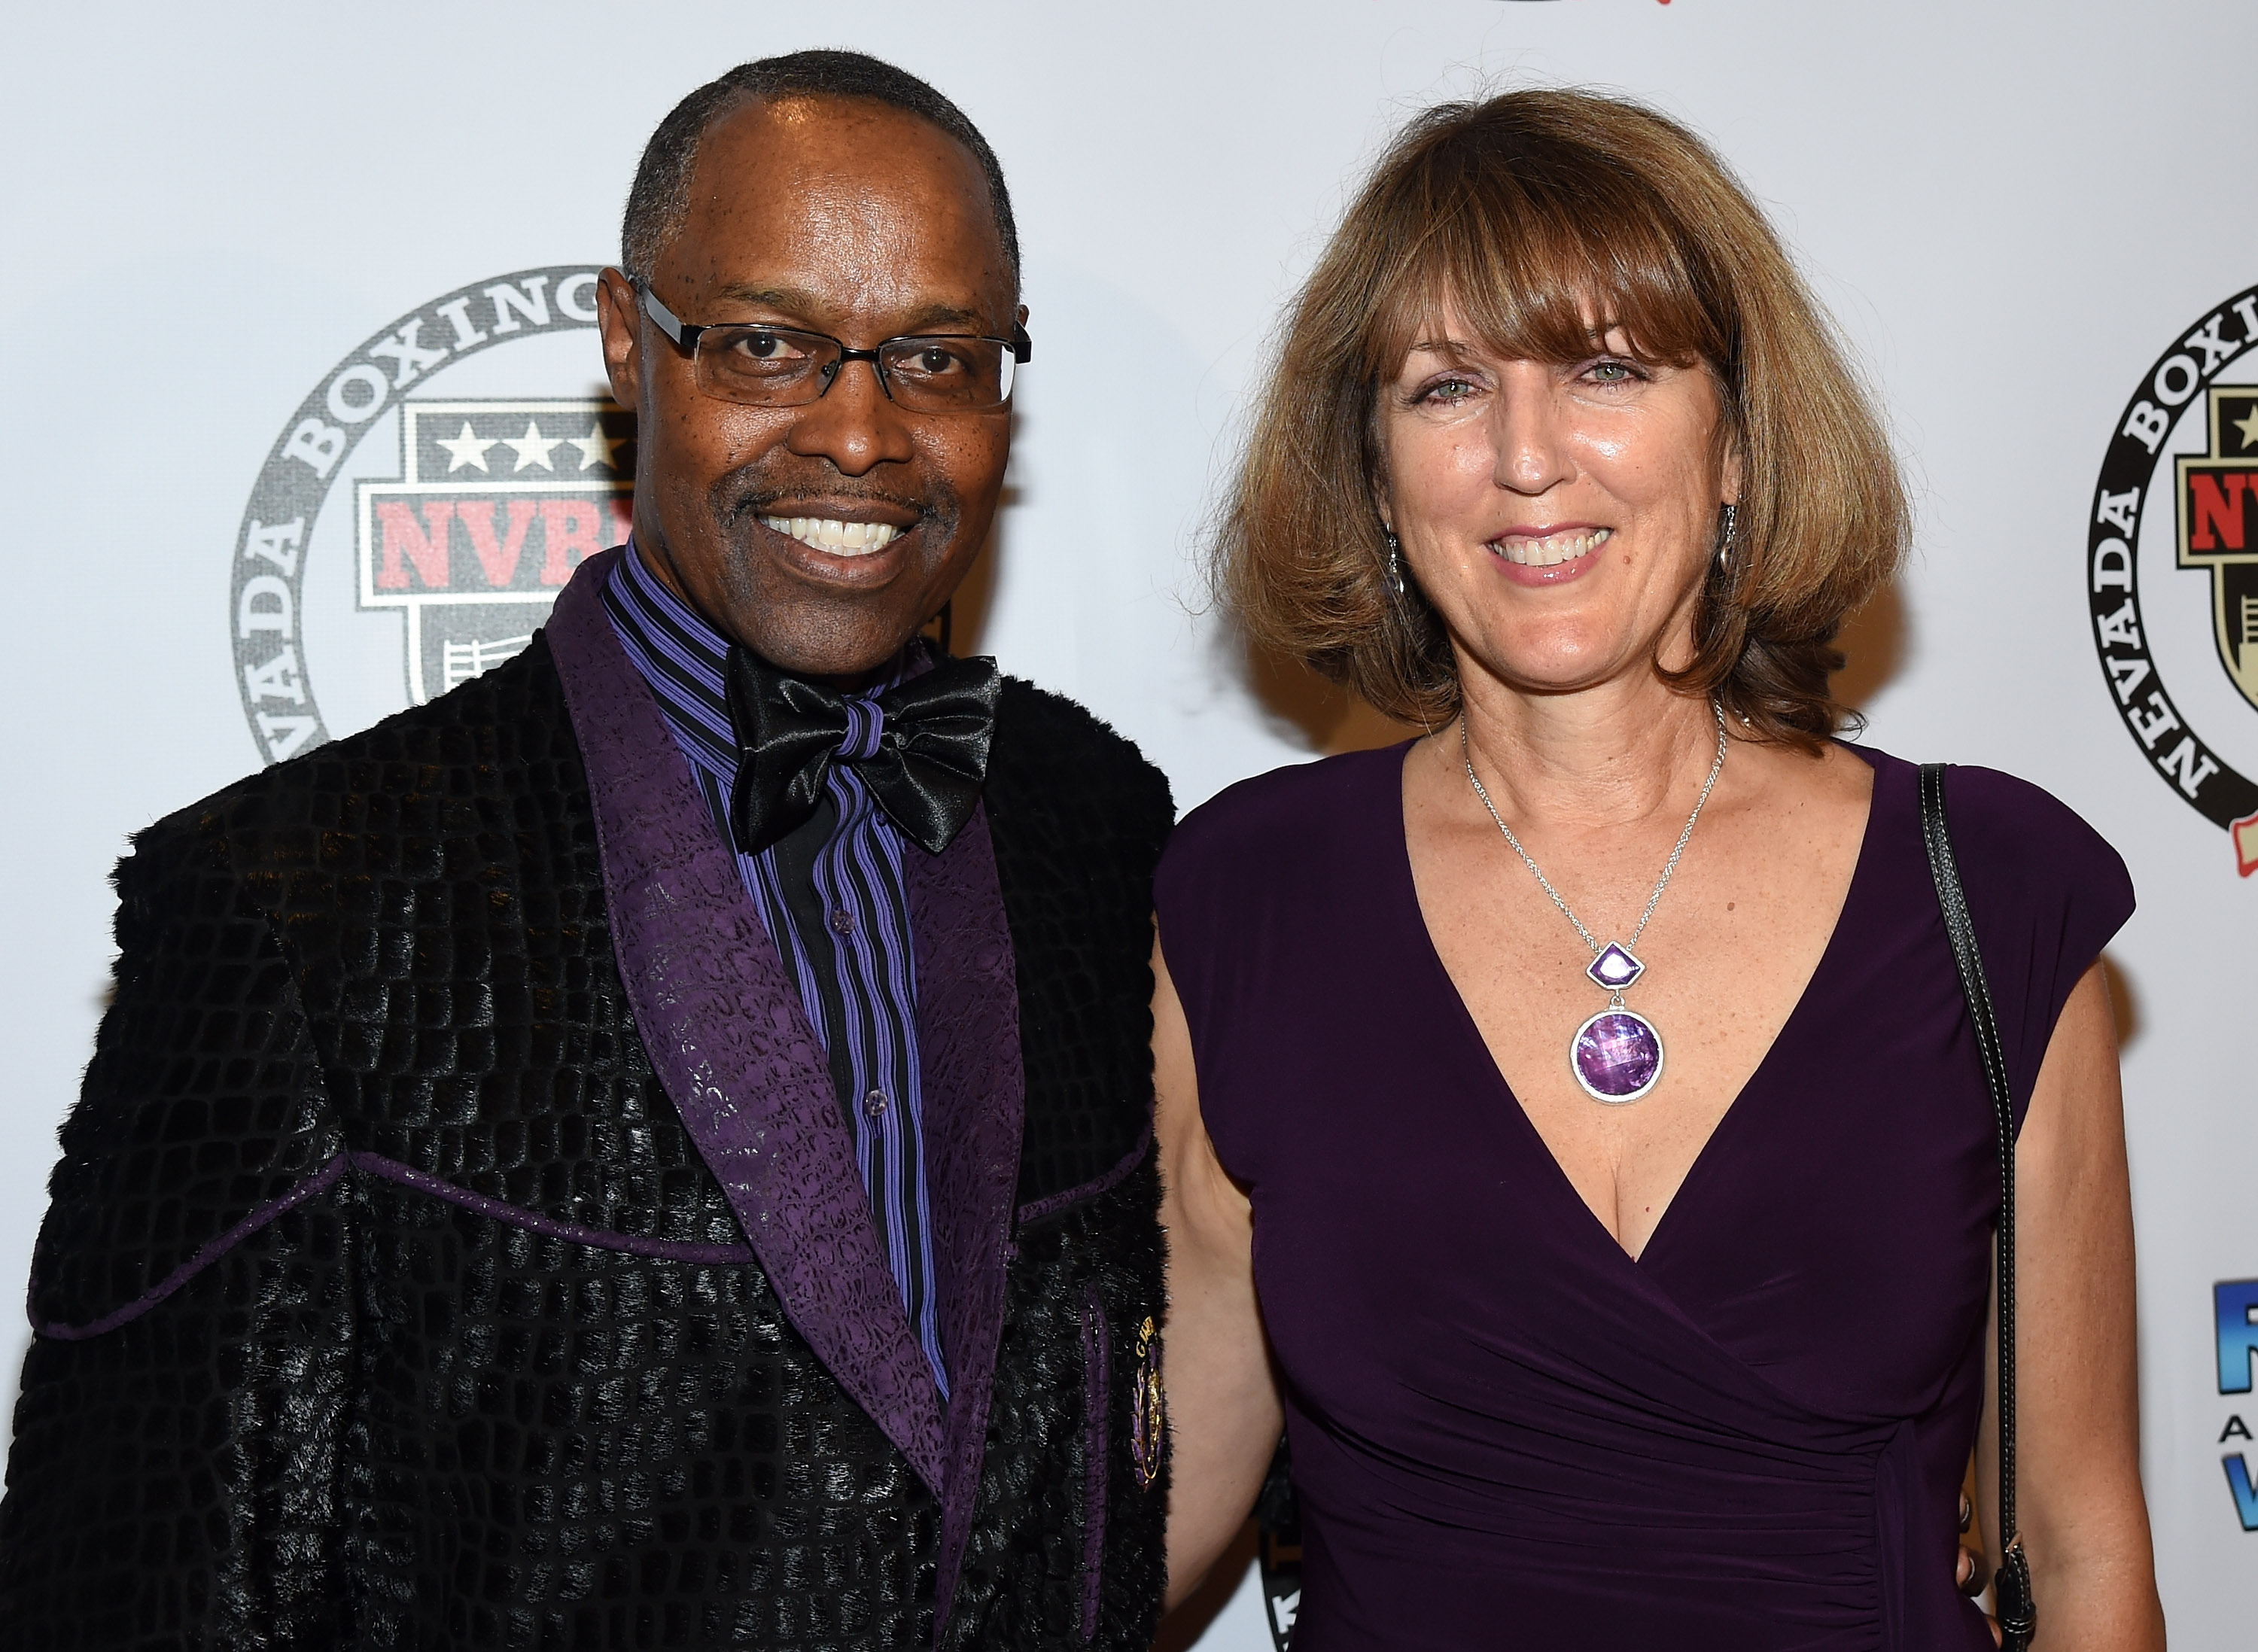 Kenny Bayless and his wife Lynora Bayless arrive at the second annual Nevada Boxing Hall of Fame induction gala. (Getty)